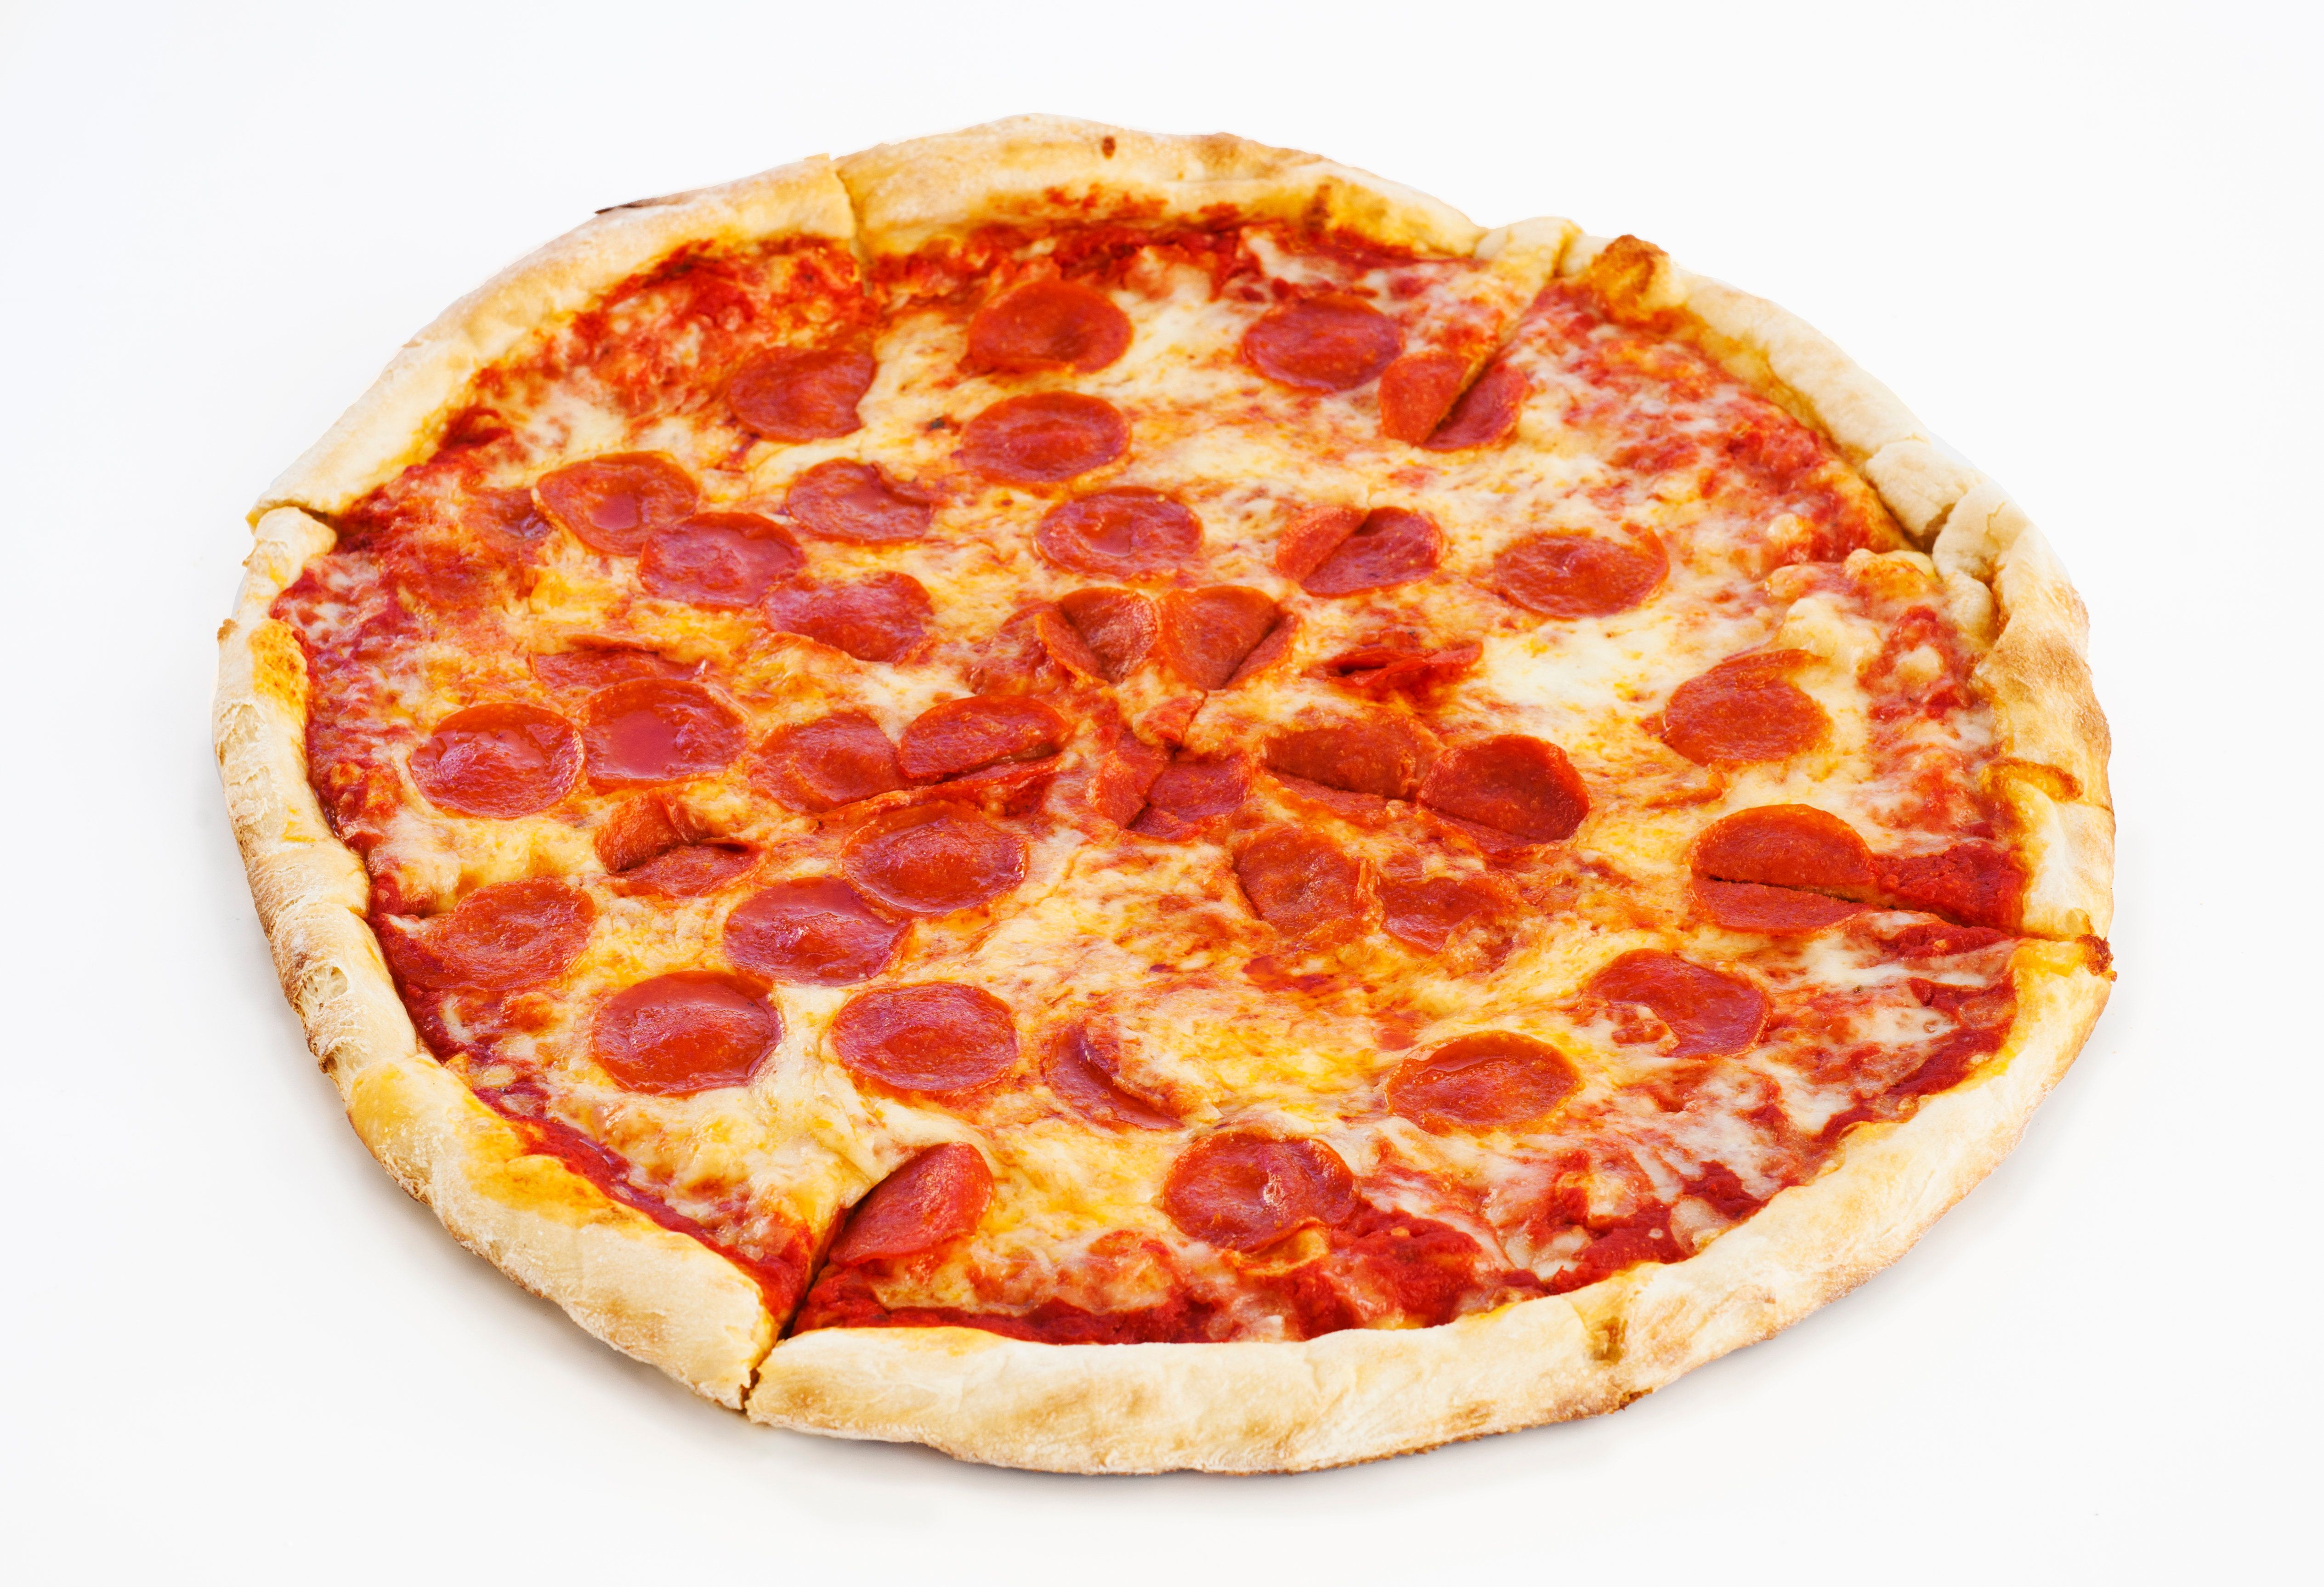 A hot slice of heaven for voters who face grueling lines at the polls and growling stomachs.